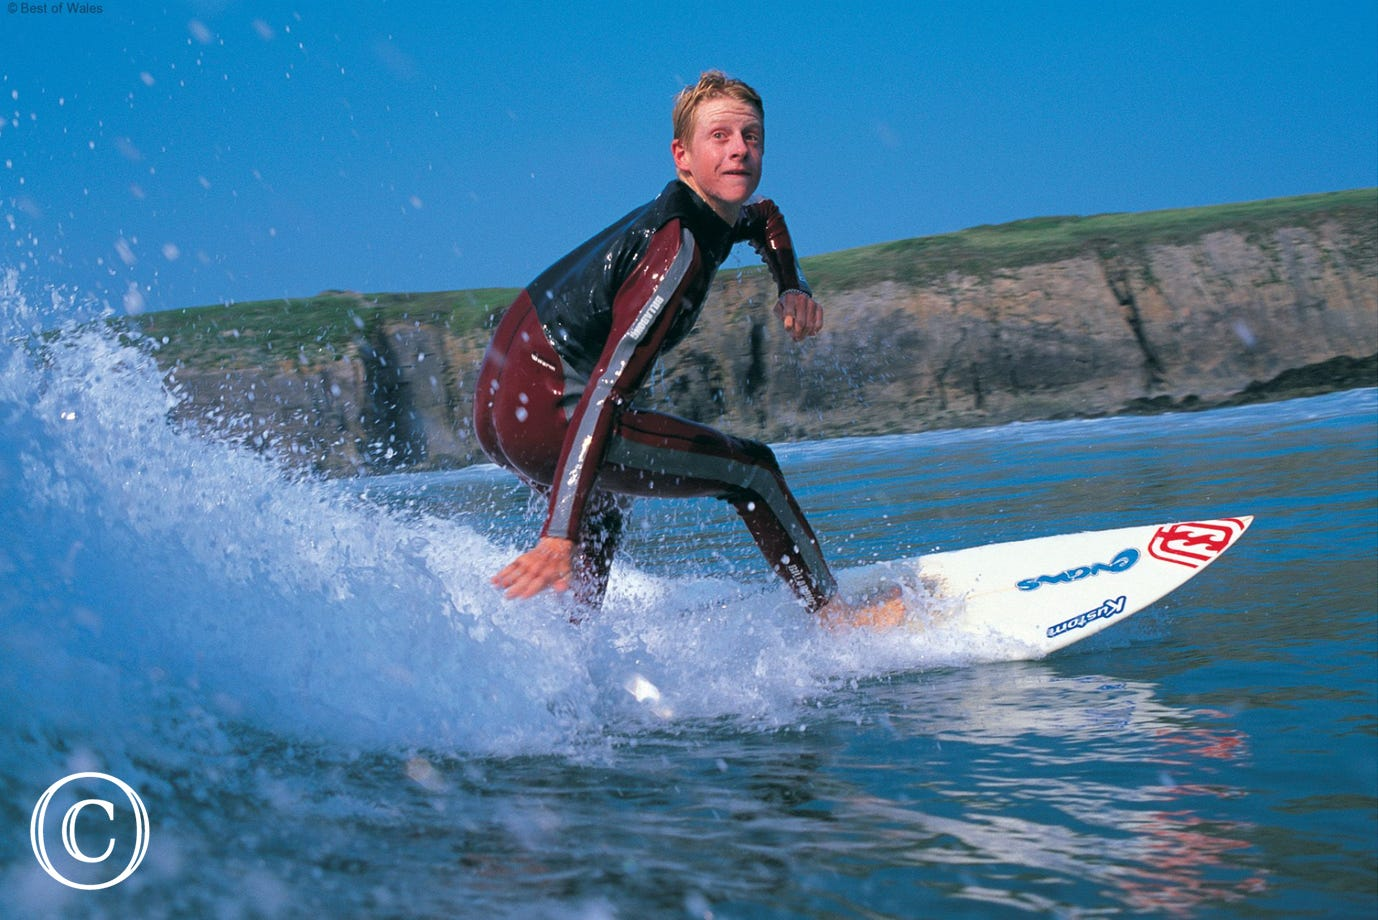 Porth Neigwl (Hell's Mouth) is a popular venue for surfers and body boarders